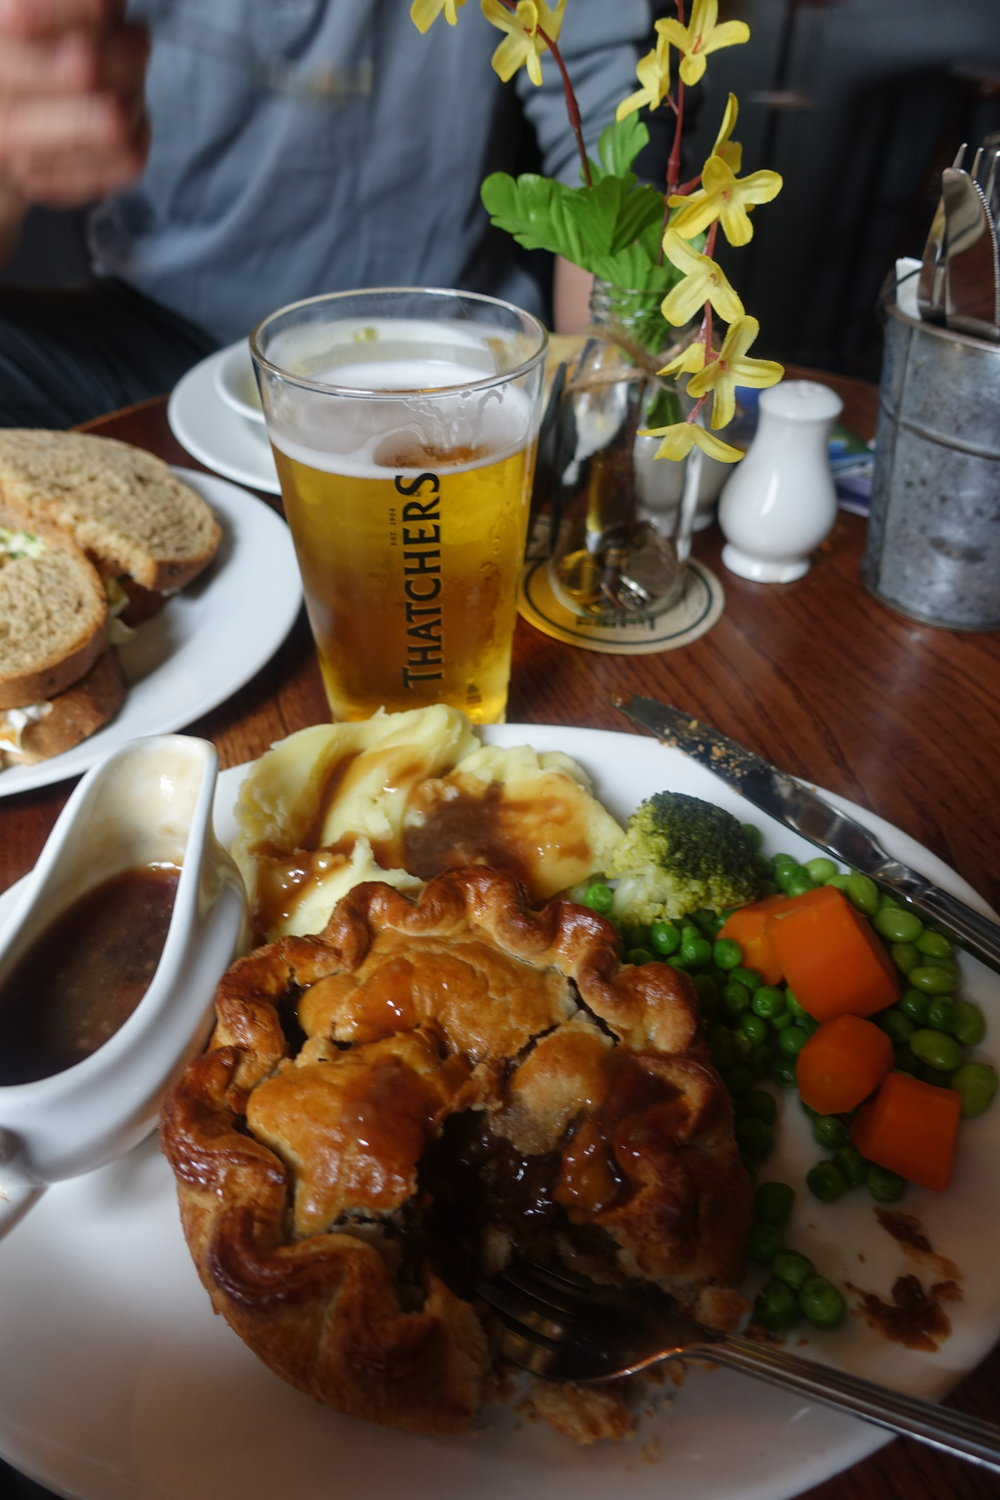 Pub meals are hard to beat